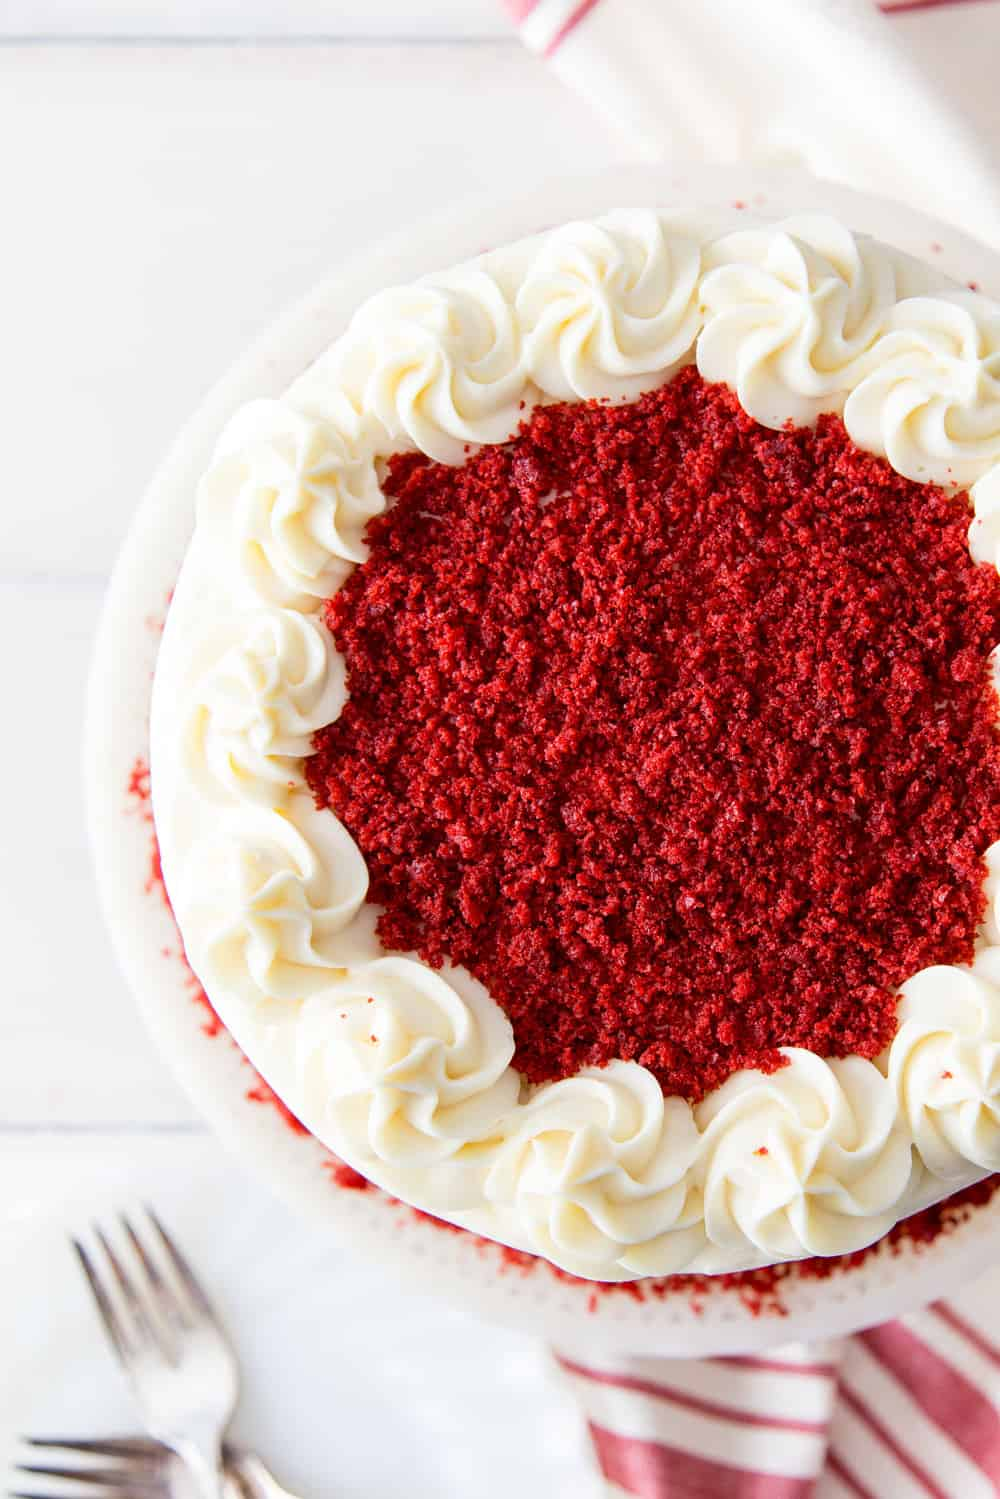 Enjoyable Red Velvet Cake Recipe The Recipe Critic Personalised Birthday Cards Rectzonderlifede